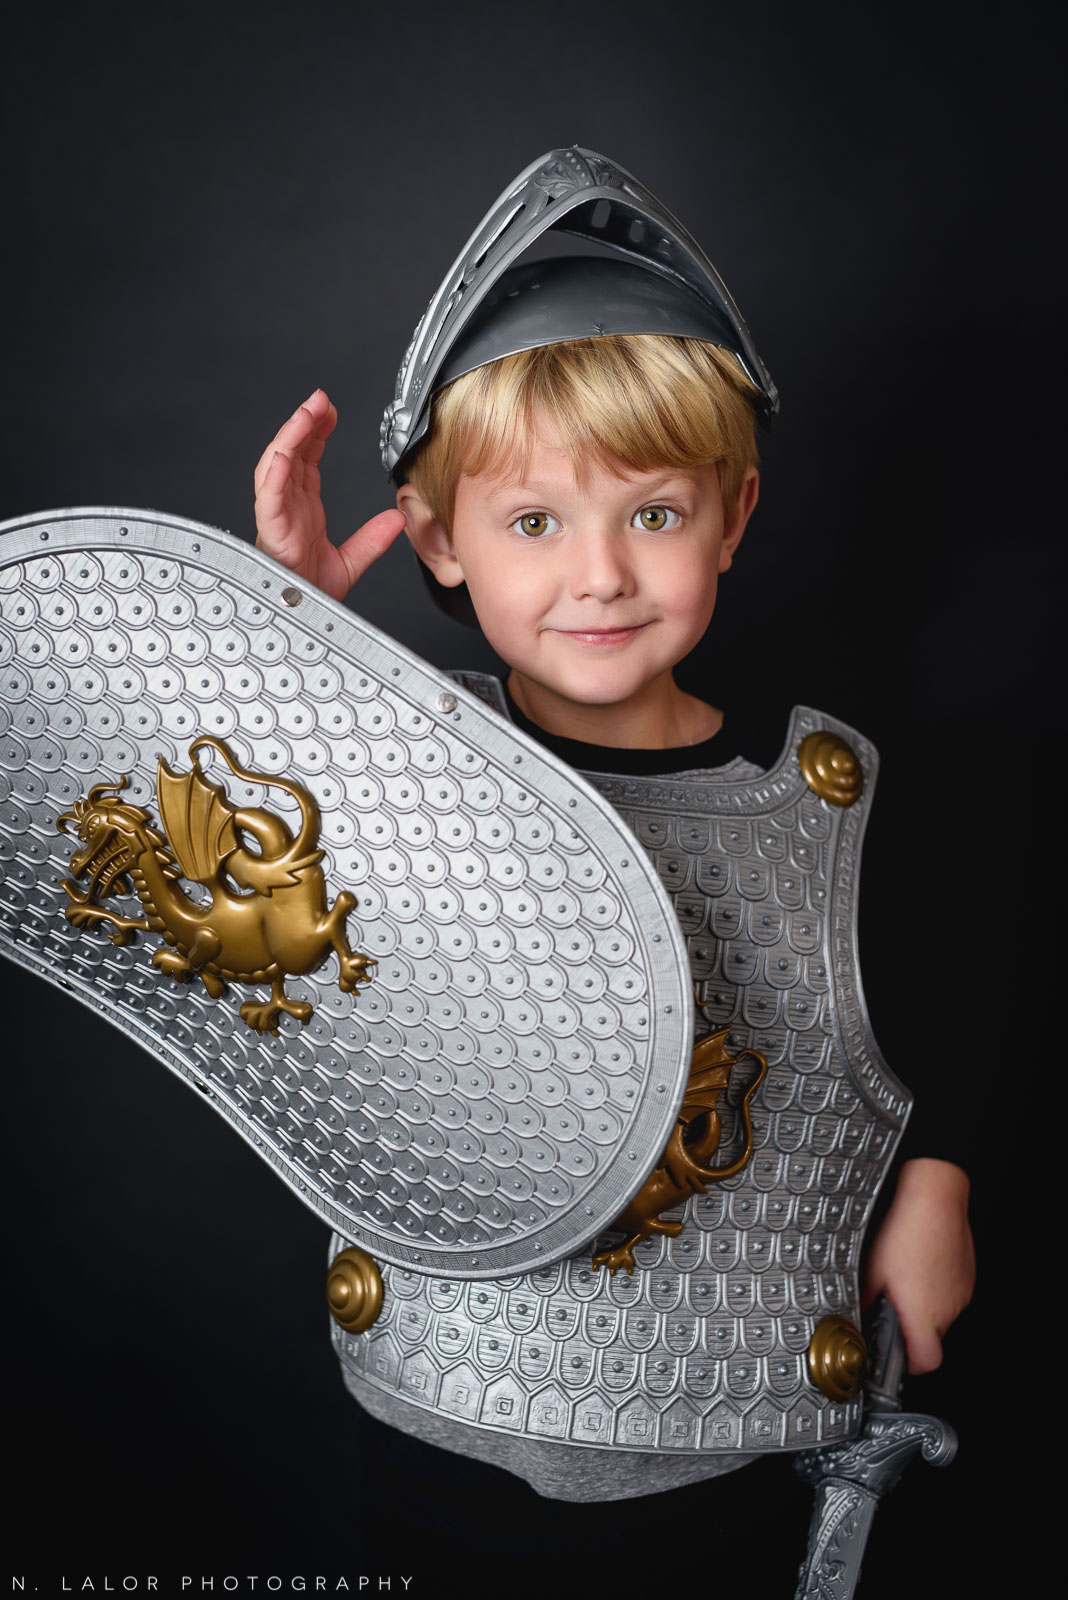 Gallant knight costume. Kids Halloween Portrait by N. Lalor Photography in Greenwich, Connecticut.